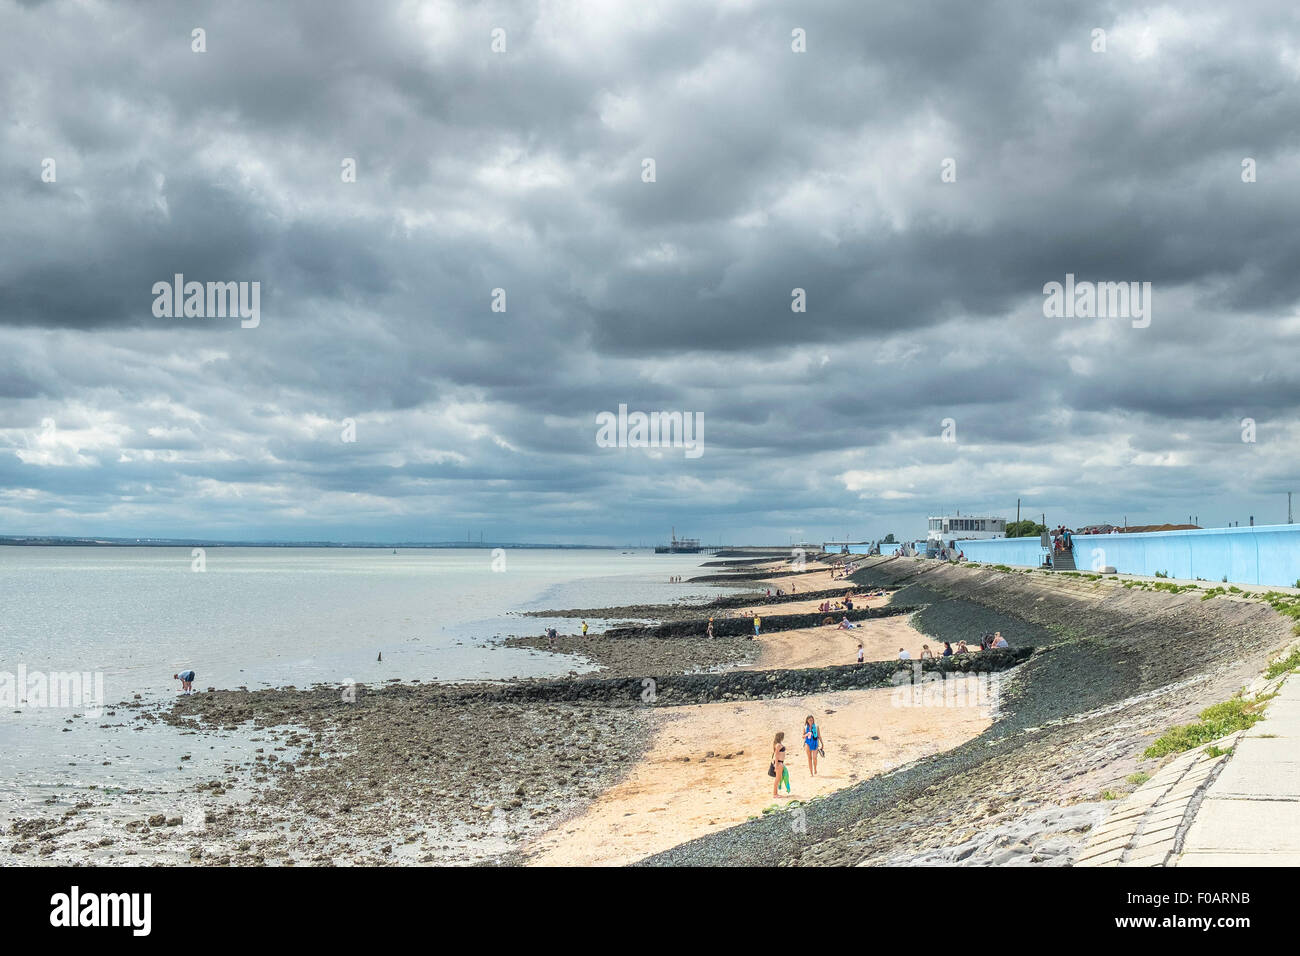 Canvey Island - The foreshore at Canvey Island, Essex. - Stock Image